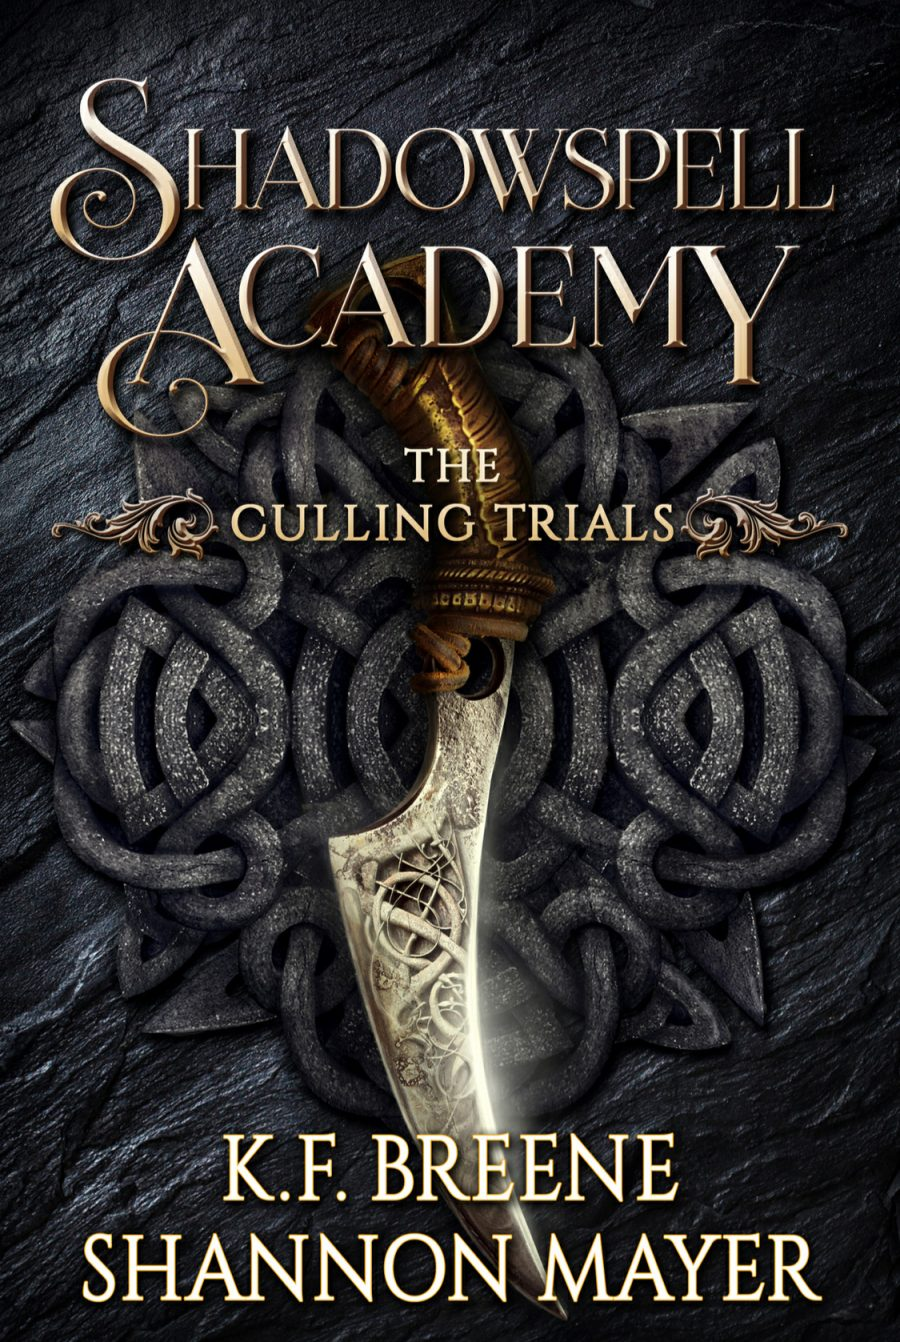 Shadowspell Academy: The Culling Trials - Book 1 - by Shannon Mayer and K.F. Breene - A Book Review #BookReview #YA #Academy #UrbanFantasy #NewRelease #AmazingRead